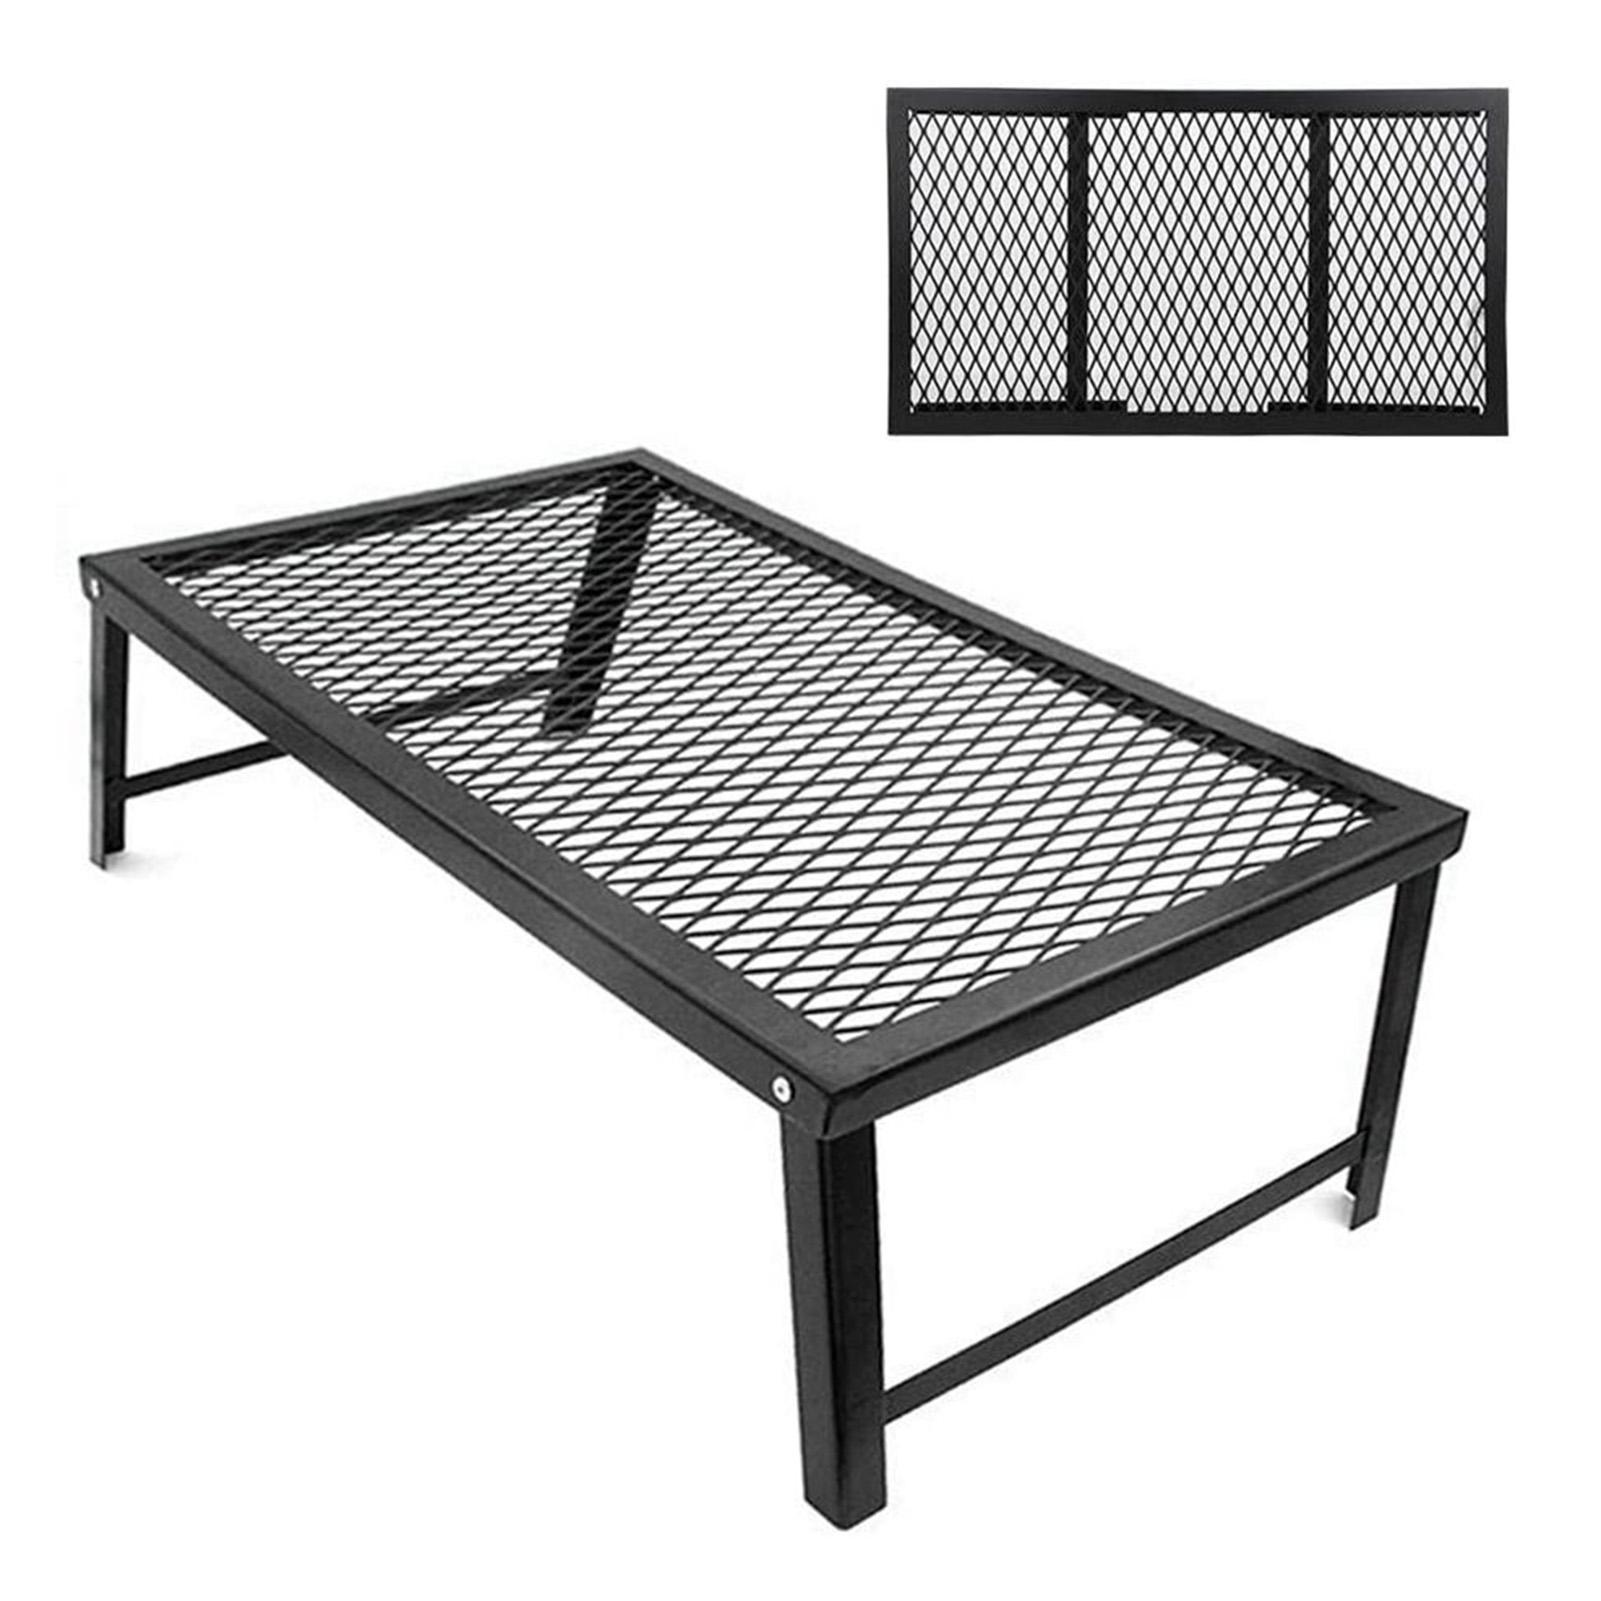 Outdoor barbecue grill barbecue table portable foldable barbecue grill for cooking camping barbecue outdoor